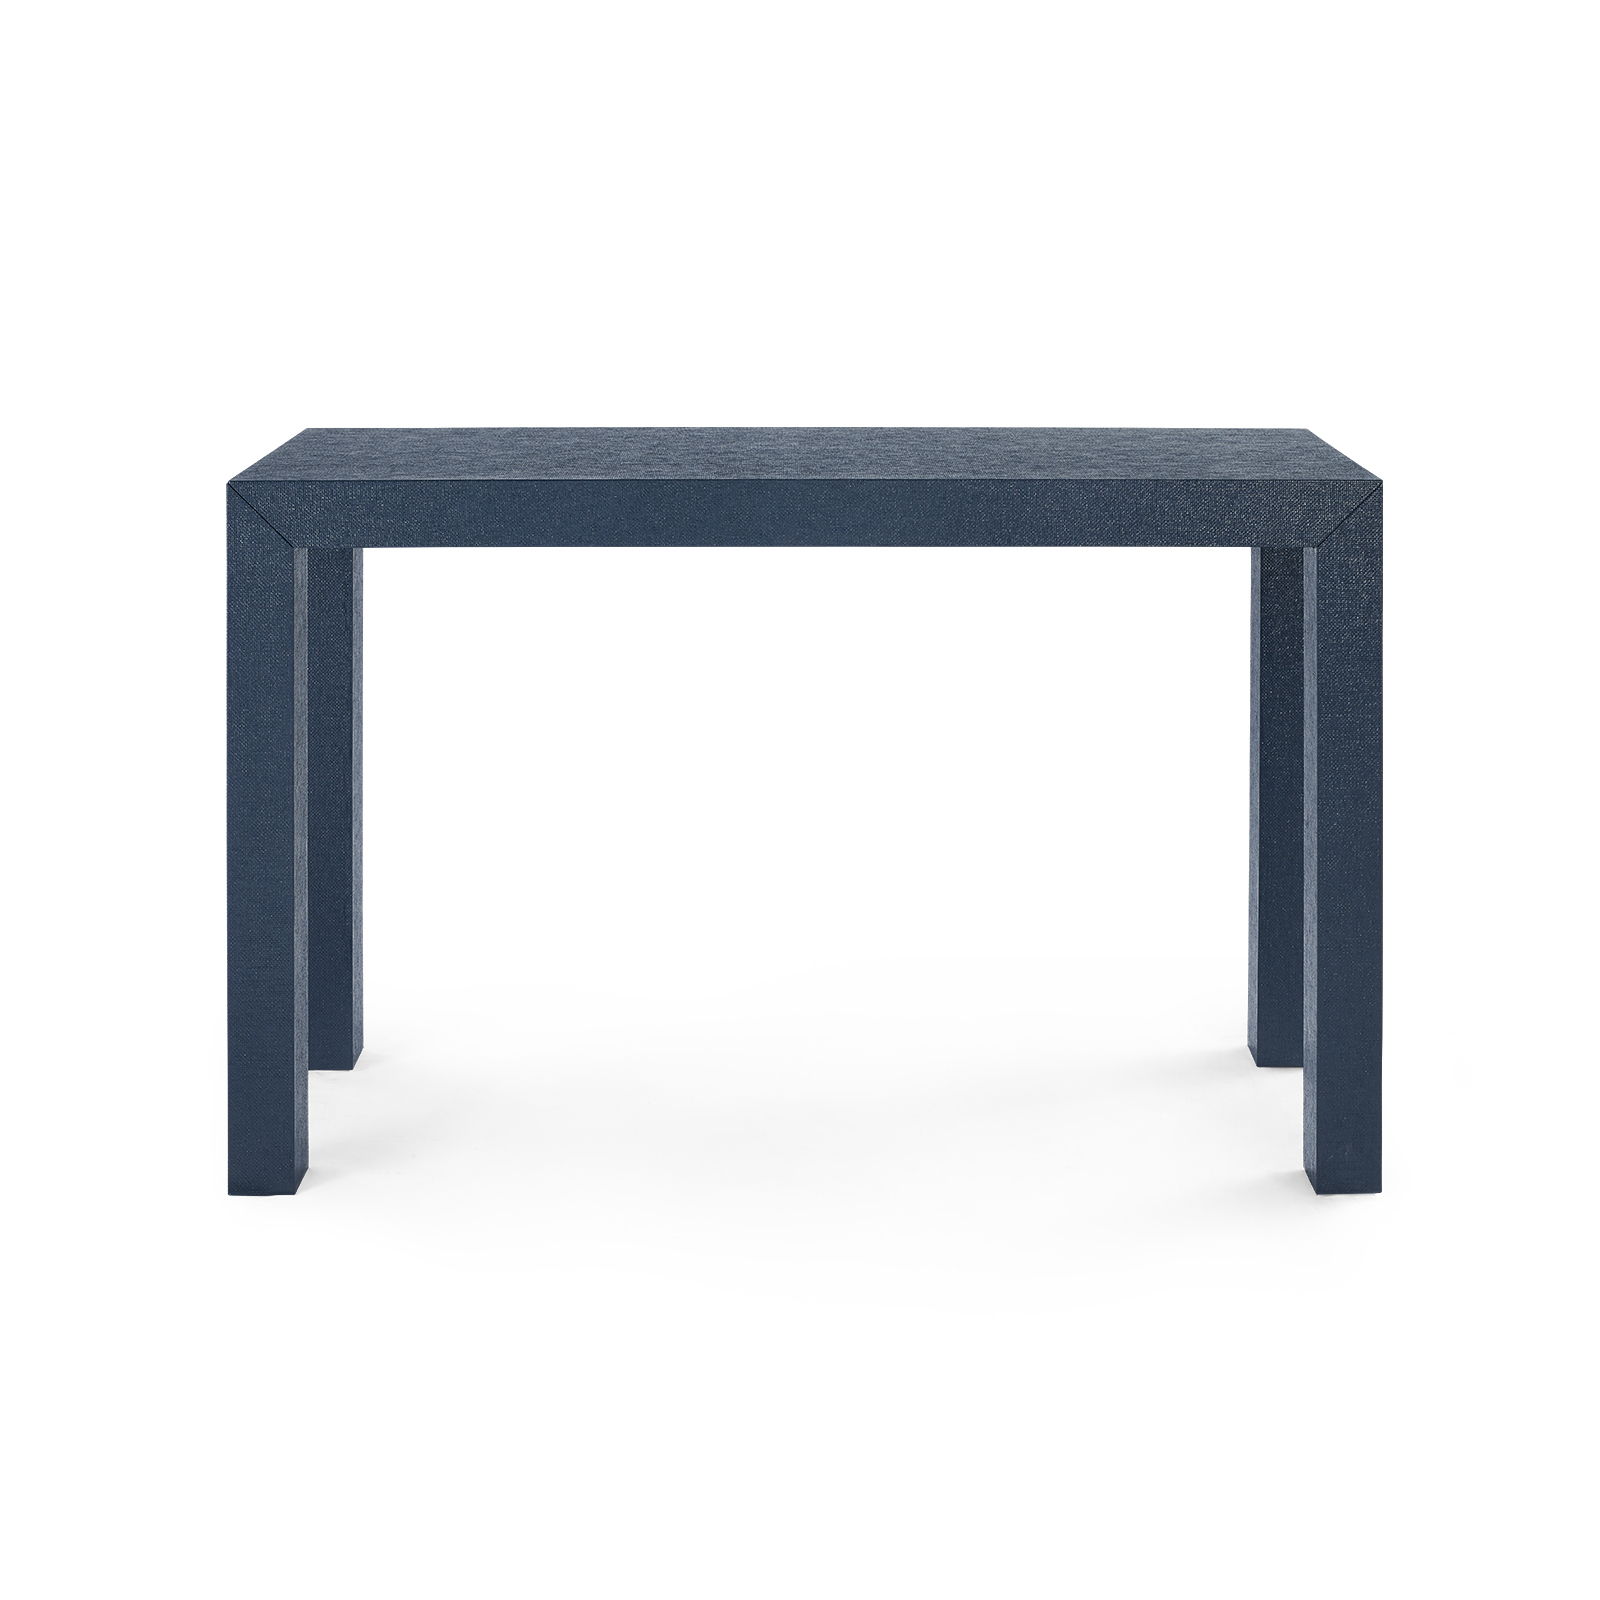 Parson coffee table in navy blue bungalow 5 - Parsons Console Table Navy Blue